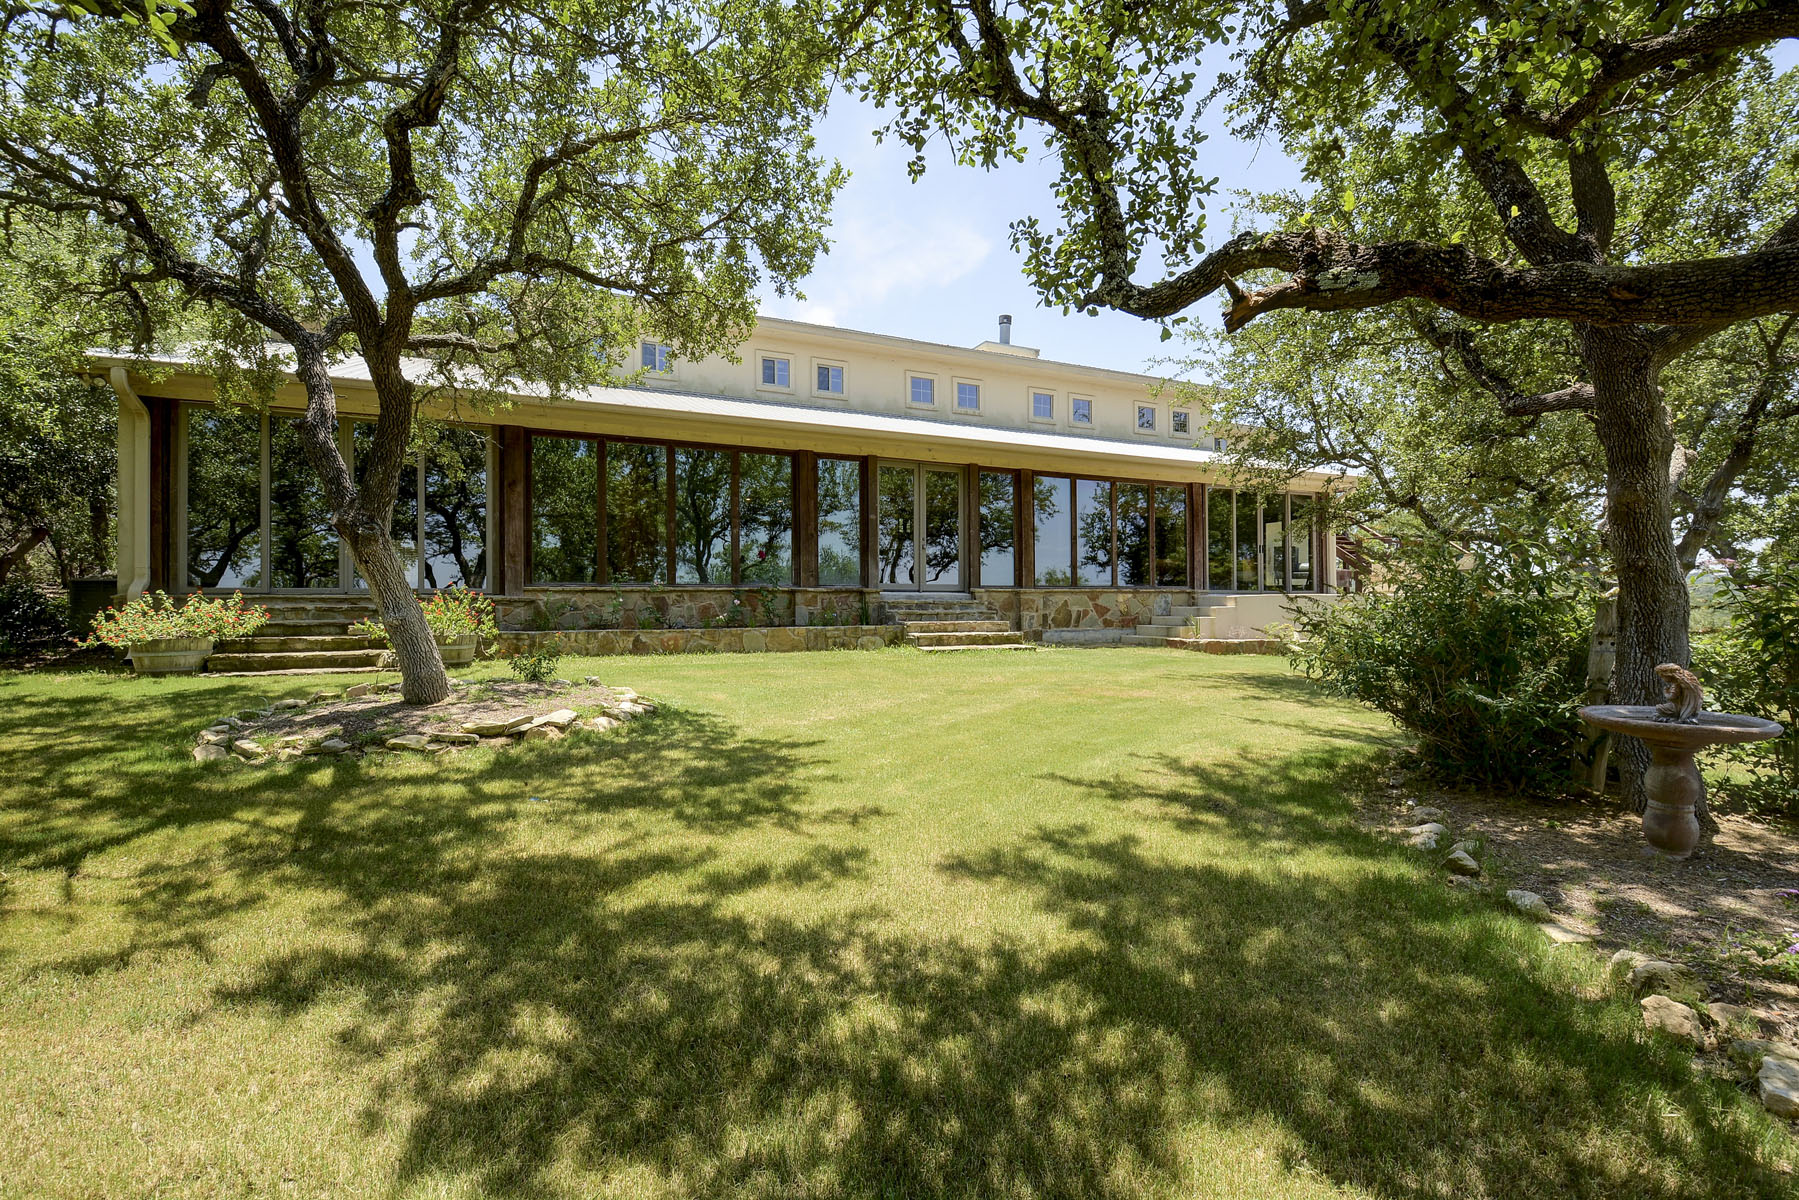 Maison unifamiliale pour l Vente à Panoramic View of the Texas Hill Country 140 Granite Ridge Dr Spicewood, Texas, 78669 États-Unis